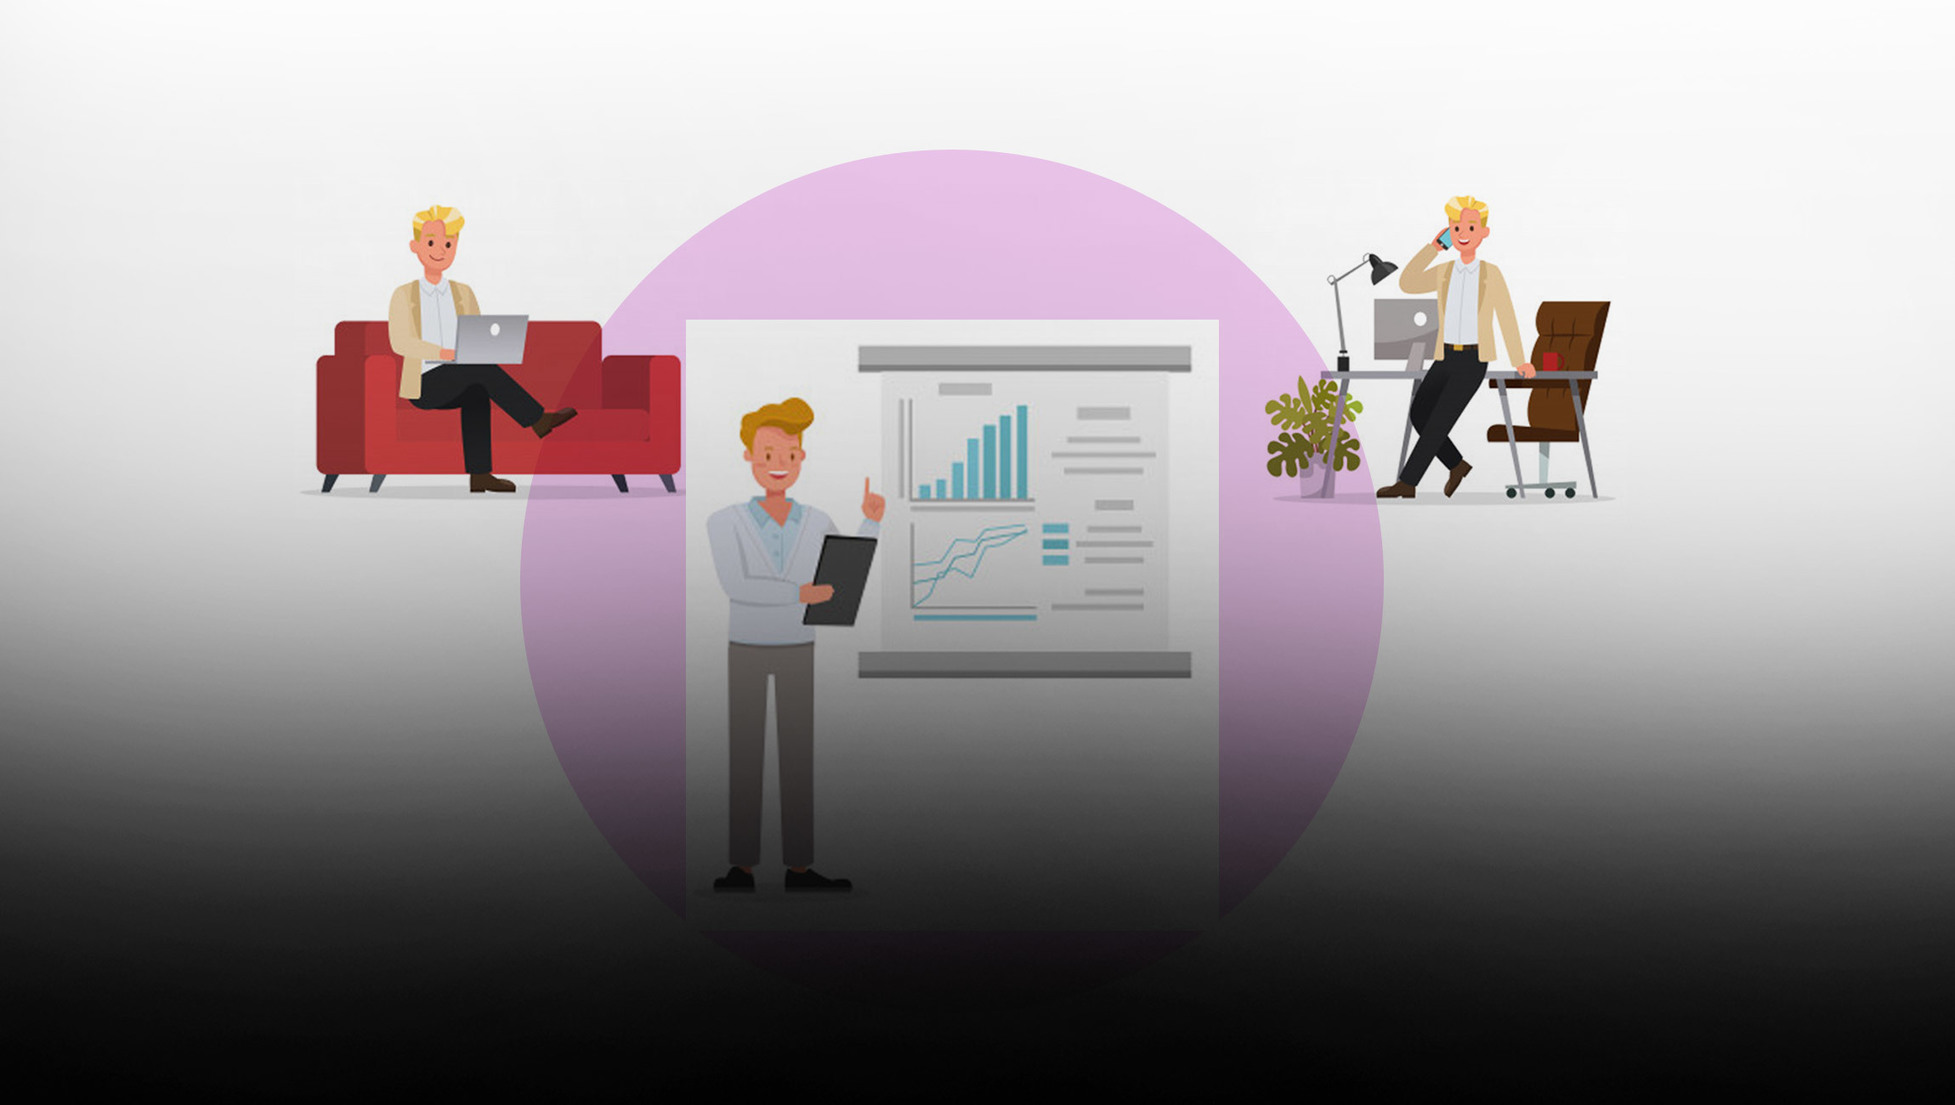 What Should You Keep in Mind when Hiring your Next Chief Sales Officer?